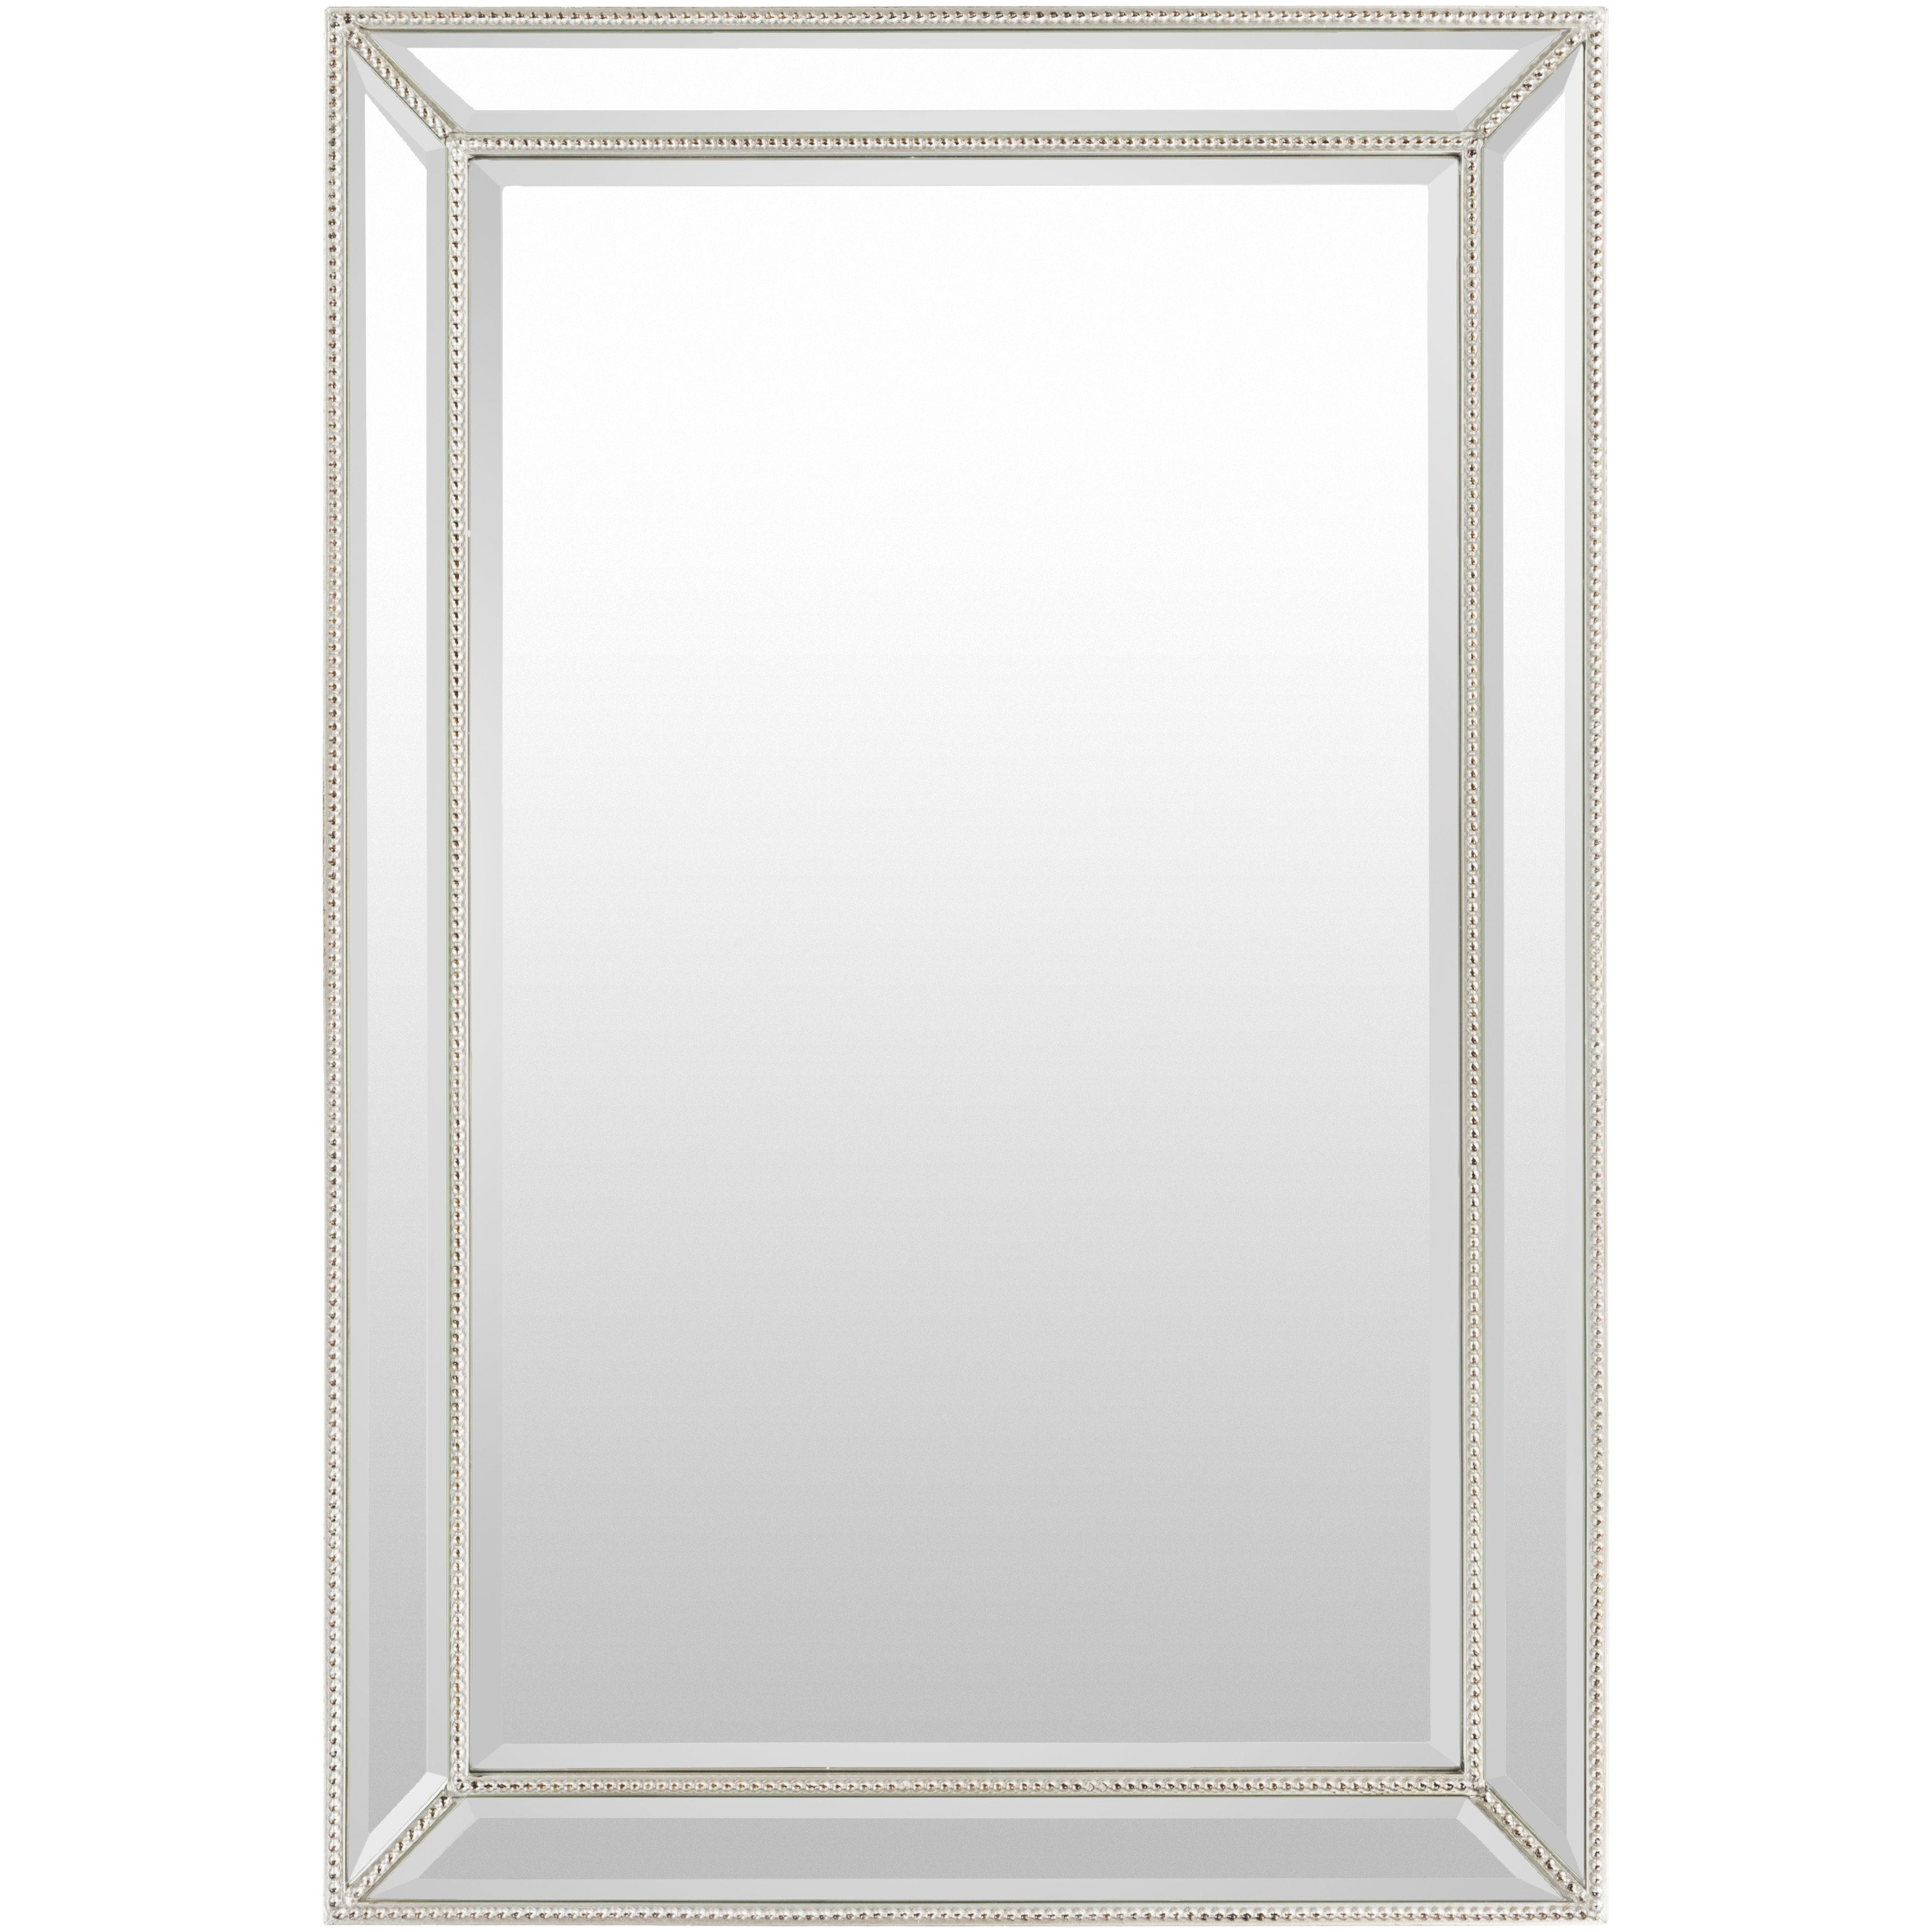 Tutuala Traditional Beveled Accent Mirror Intended For Lake Park Beveled Beaded Accent Wall Mirrors (View 28 of 30)